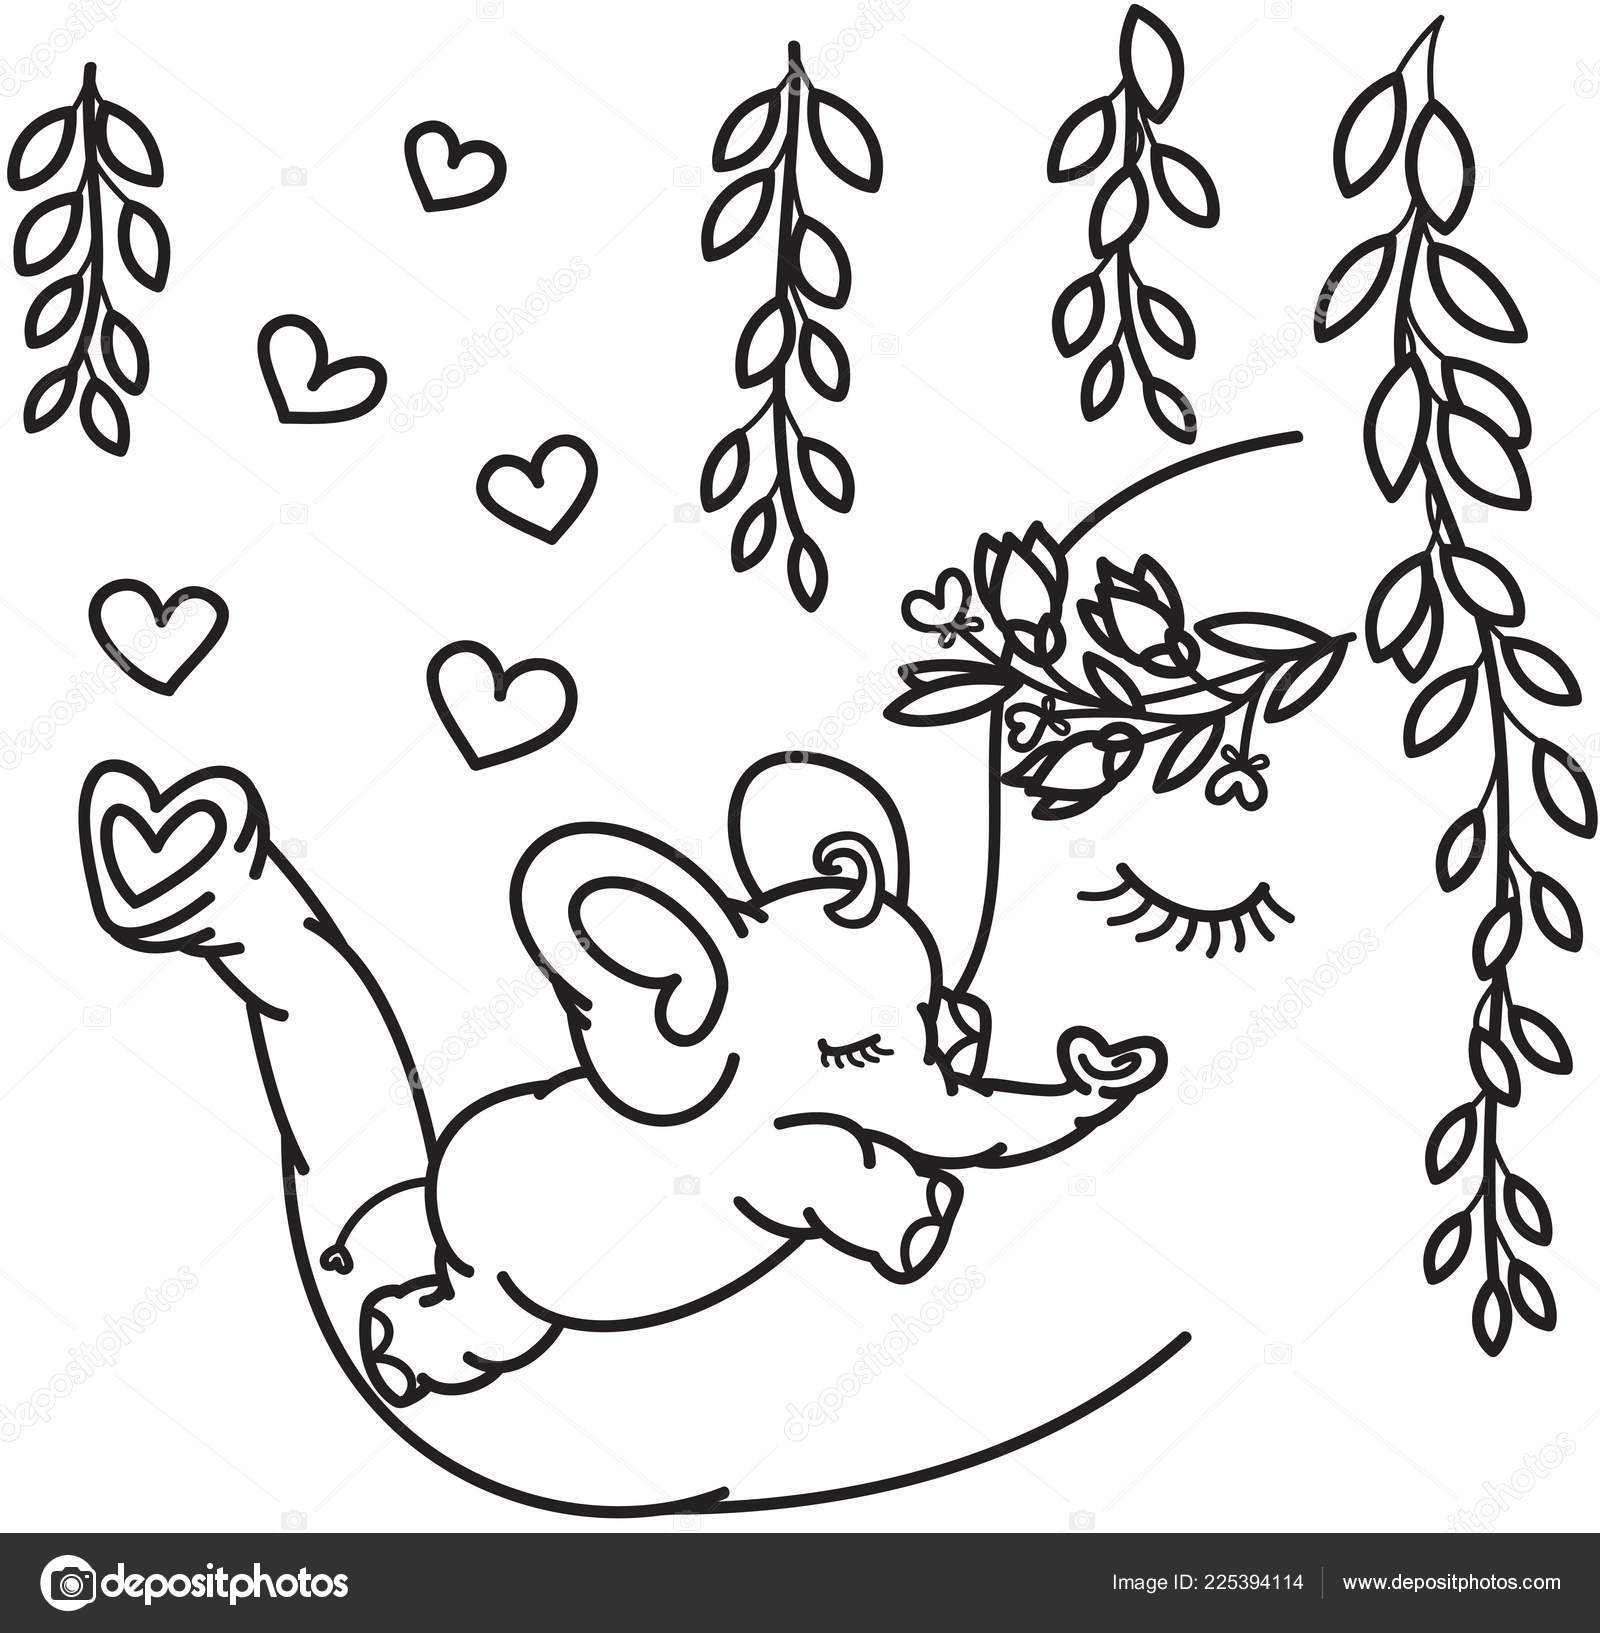 Vector Cute Elephants Mother Baby Black Silhouette Isolated White Coloring Stock Vector C Rvika 225394114